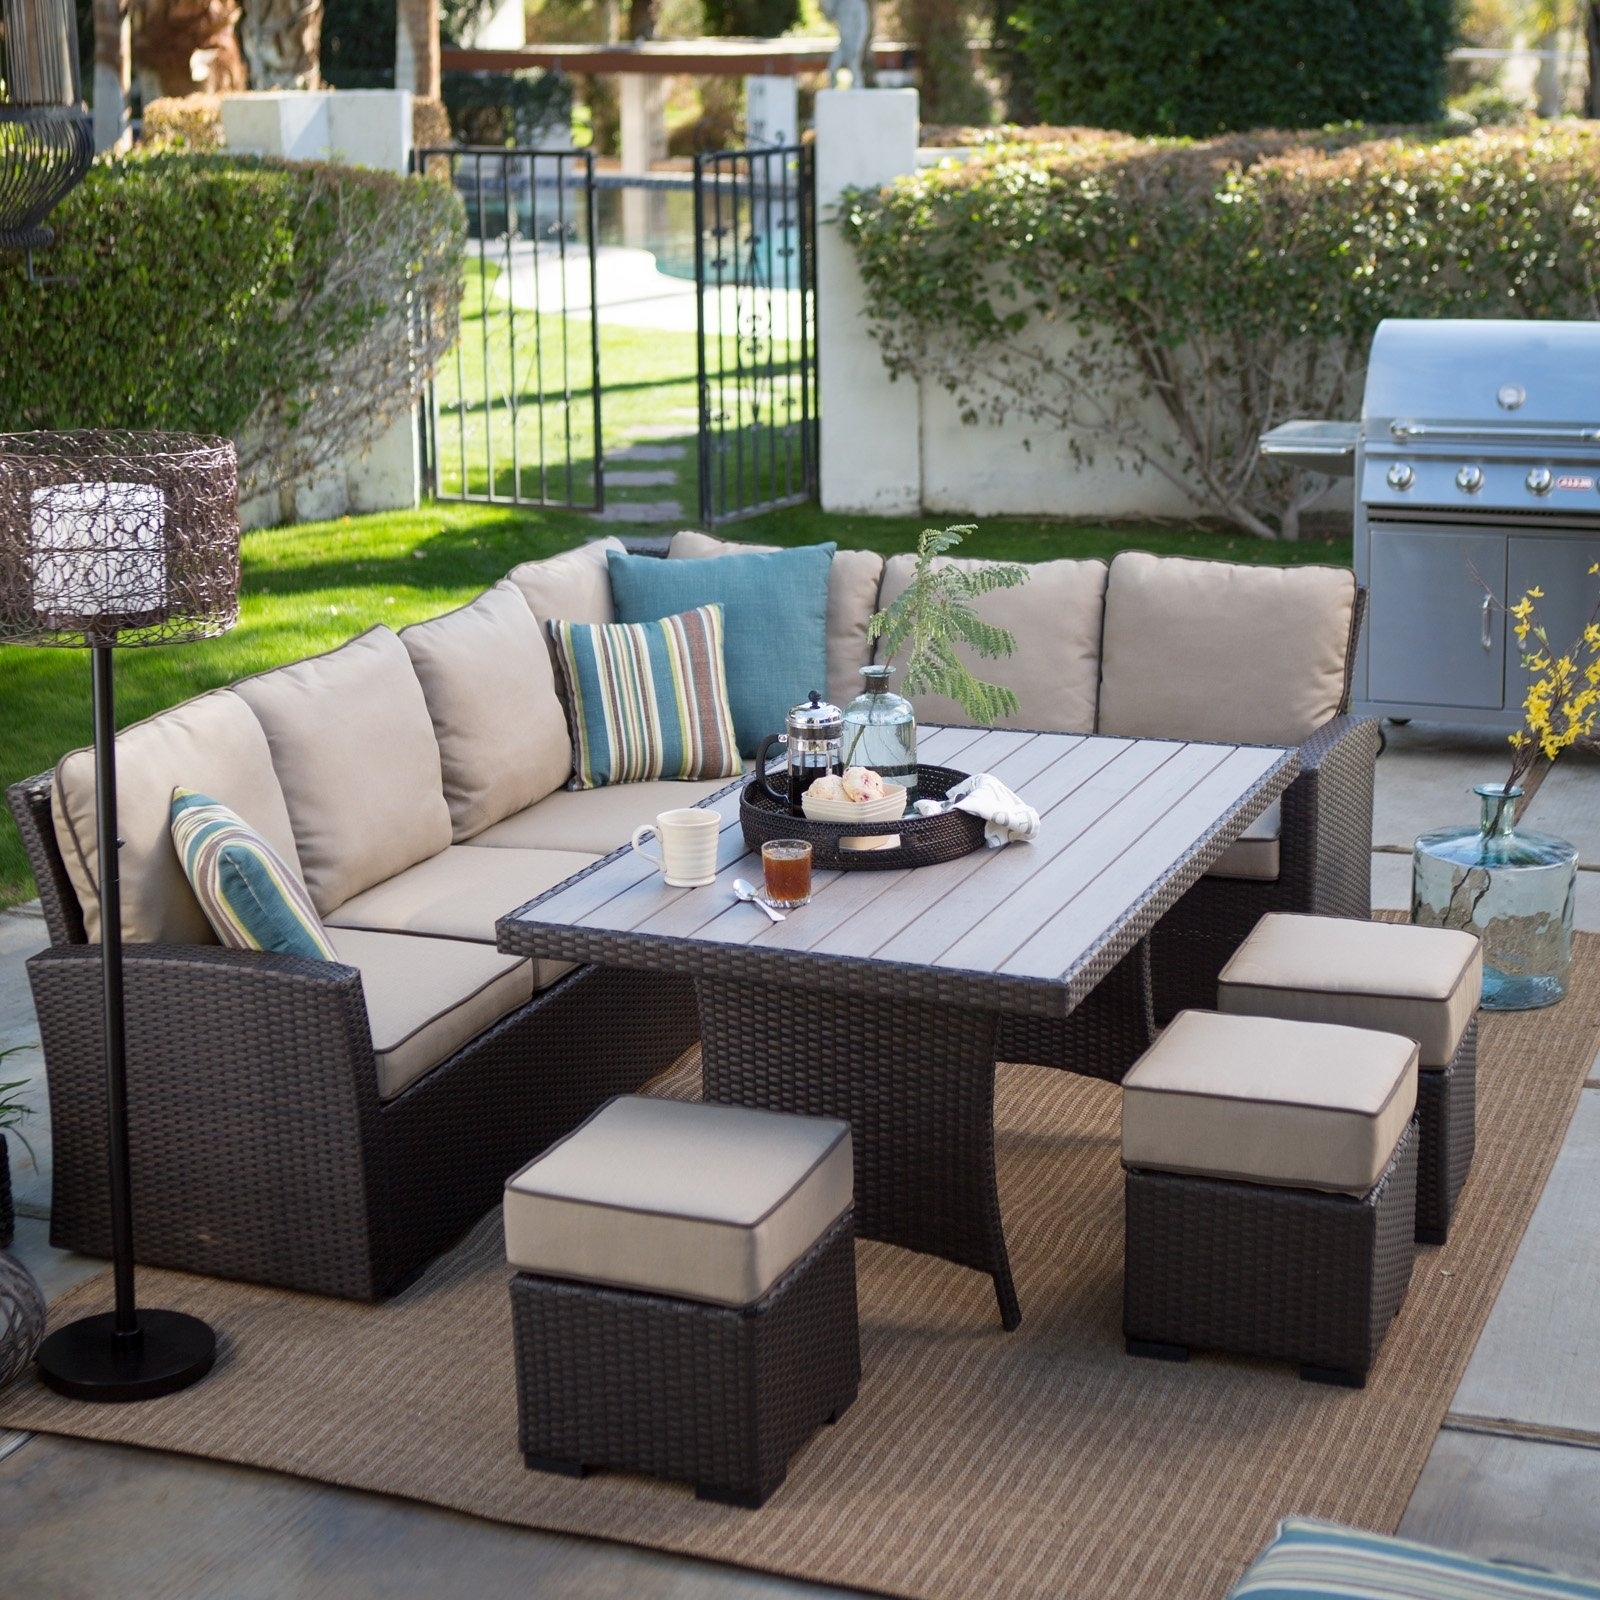 Conversation Patio Sets With Outdoor Sectionals Regarding Most Popular Belham Living Monticello All Weather Wicker Sofa Sectional Patio (View 2 of 15)